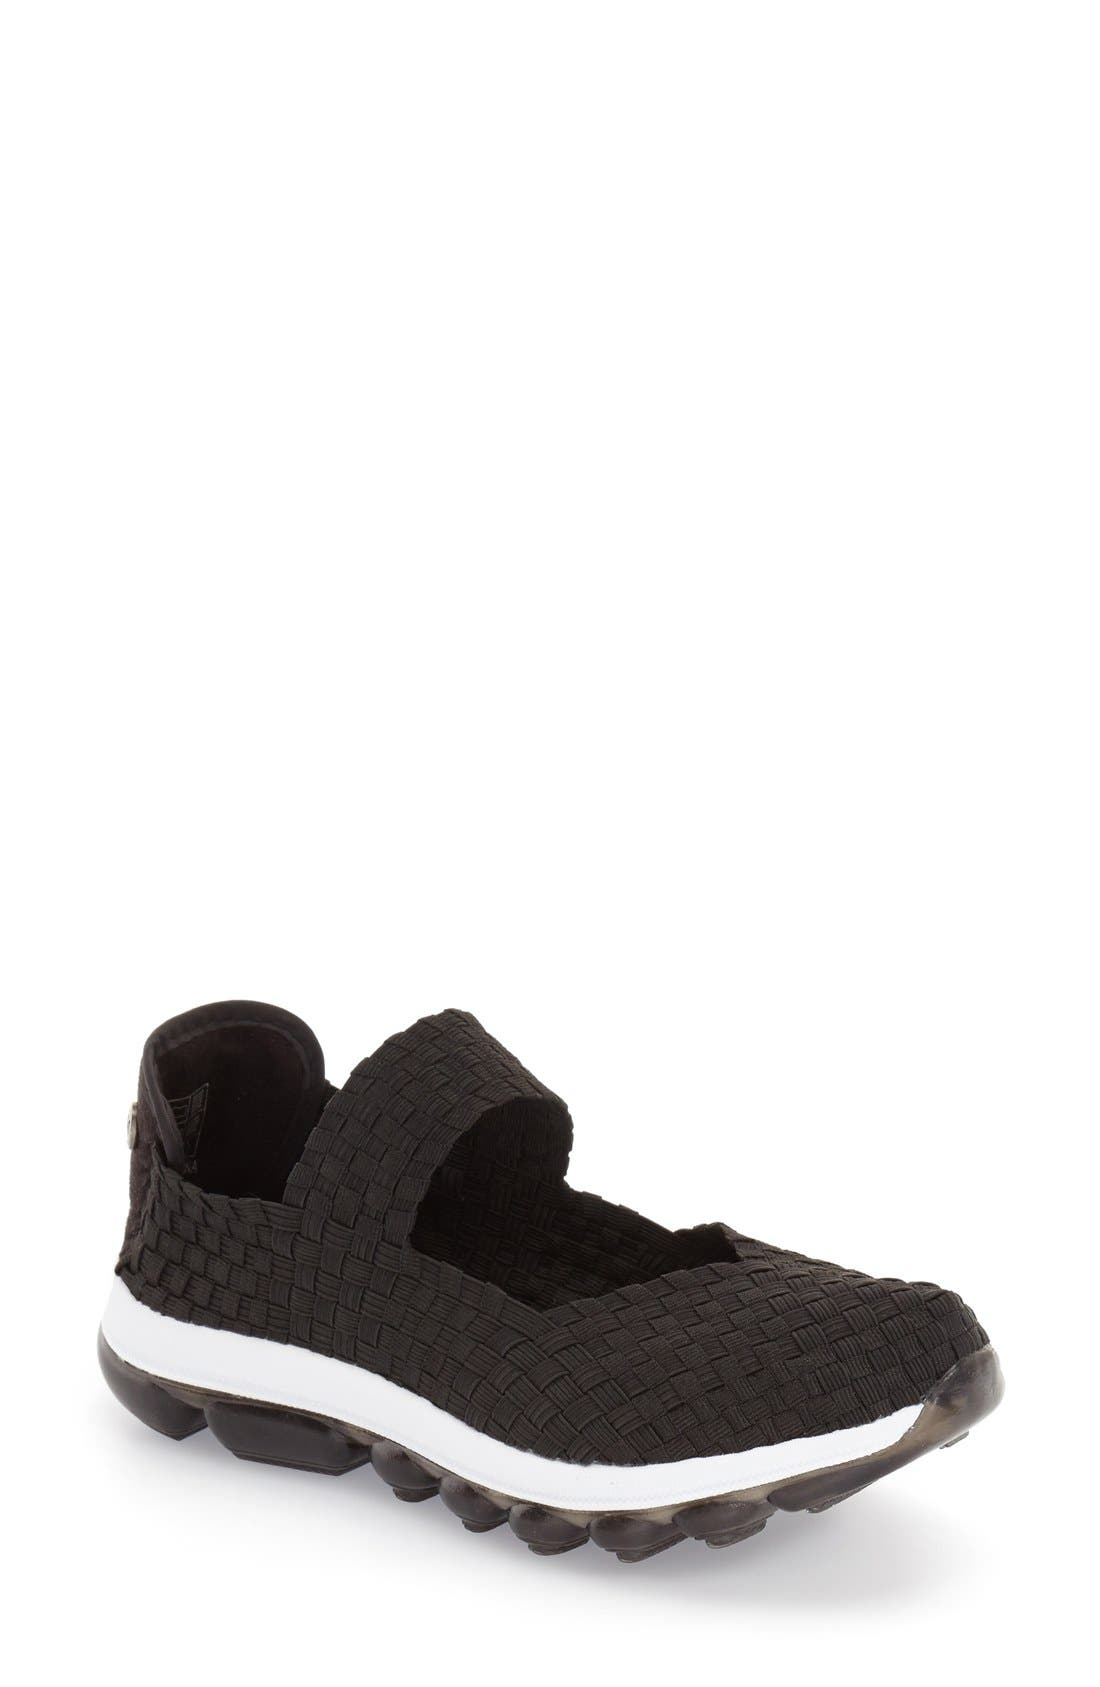 'Gummies Charm' Stretch Woven Slip-On Sneaker,                             Main thumbnail 1, color,                             Black Fabric